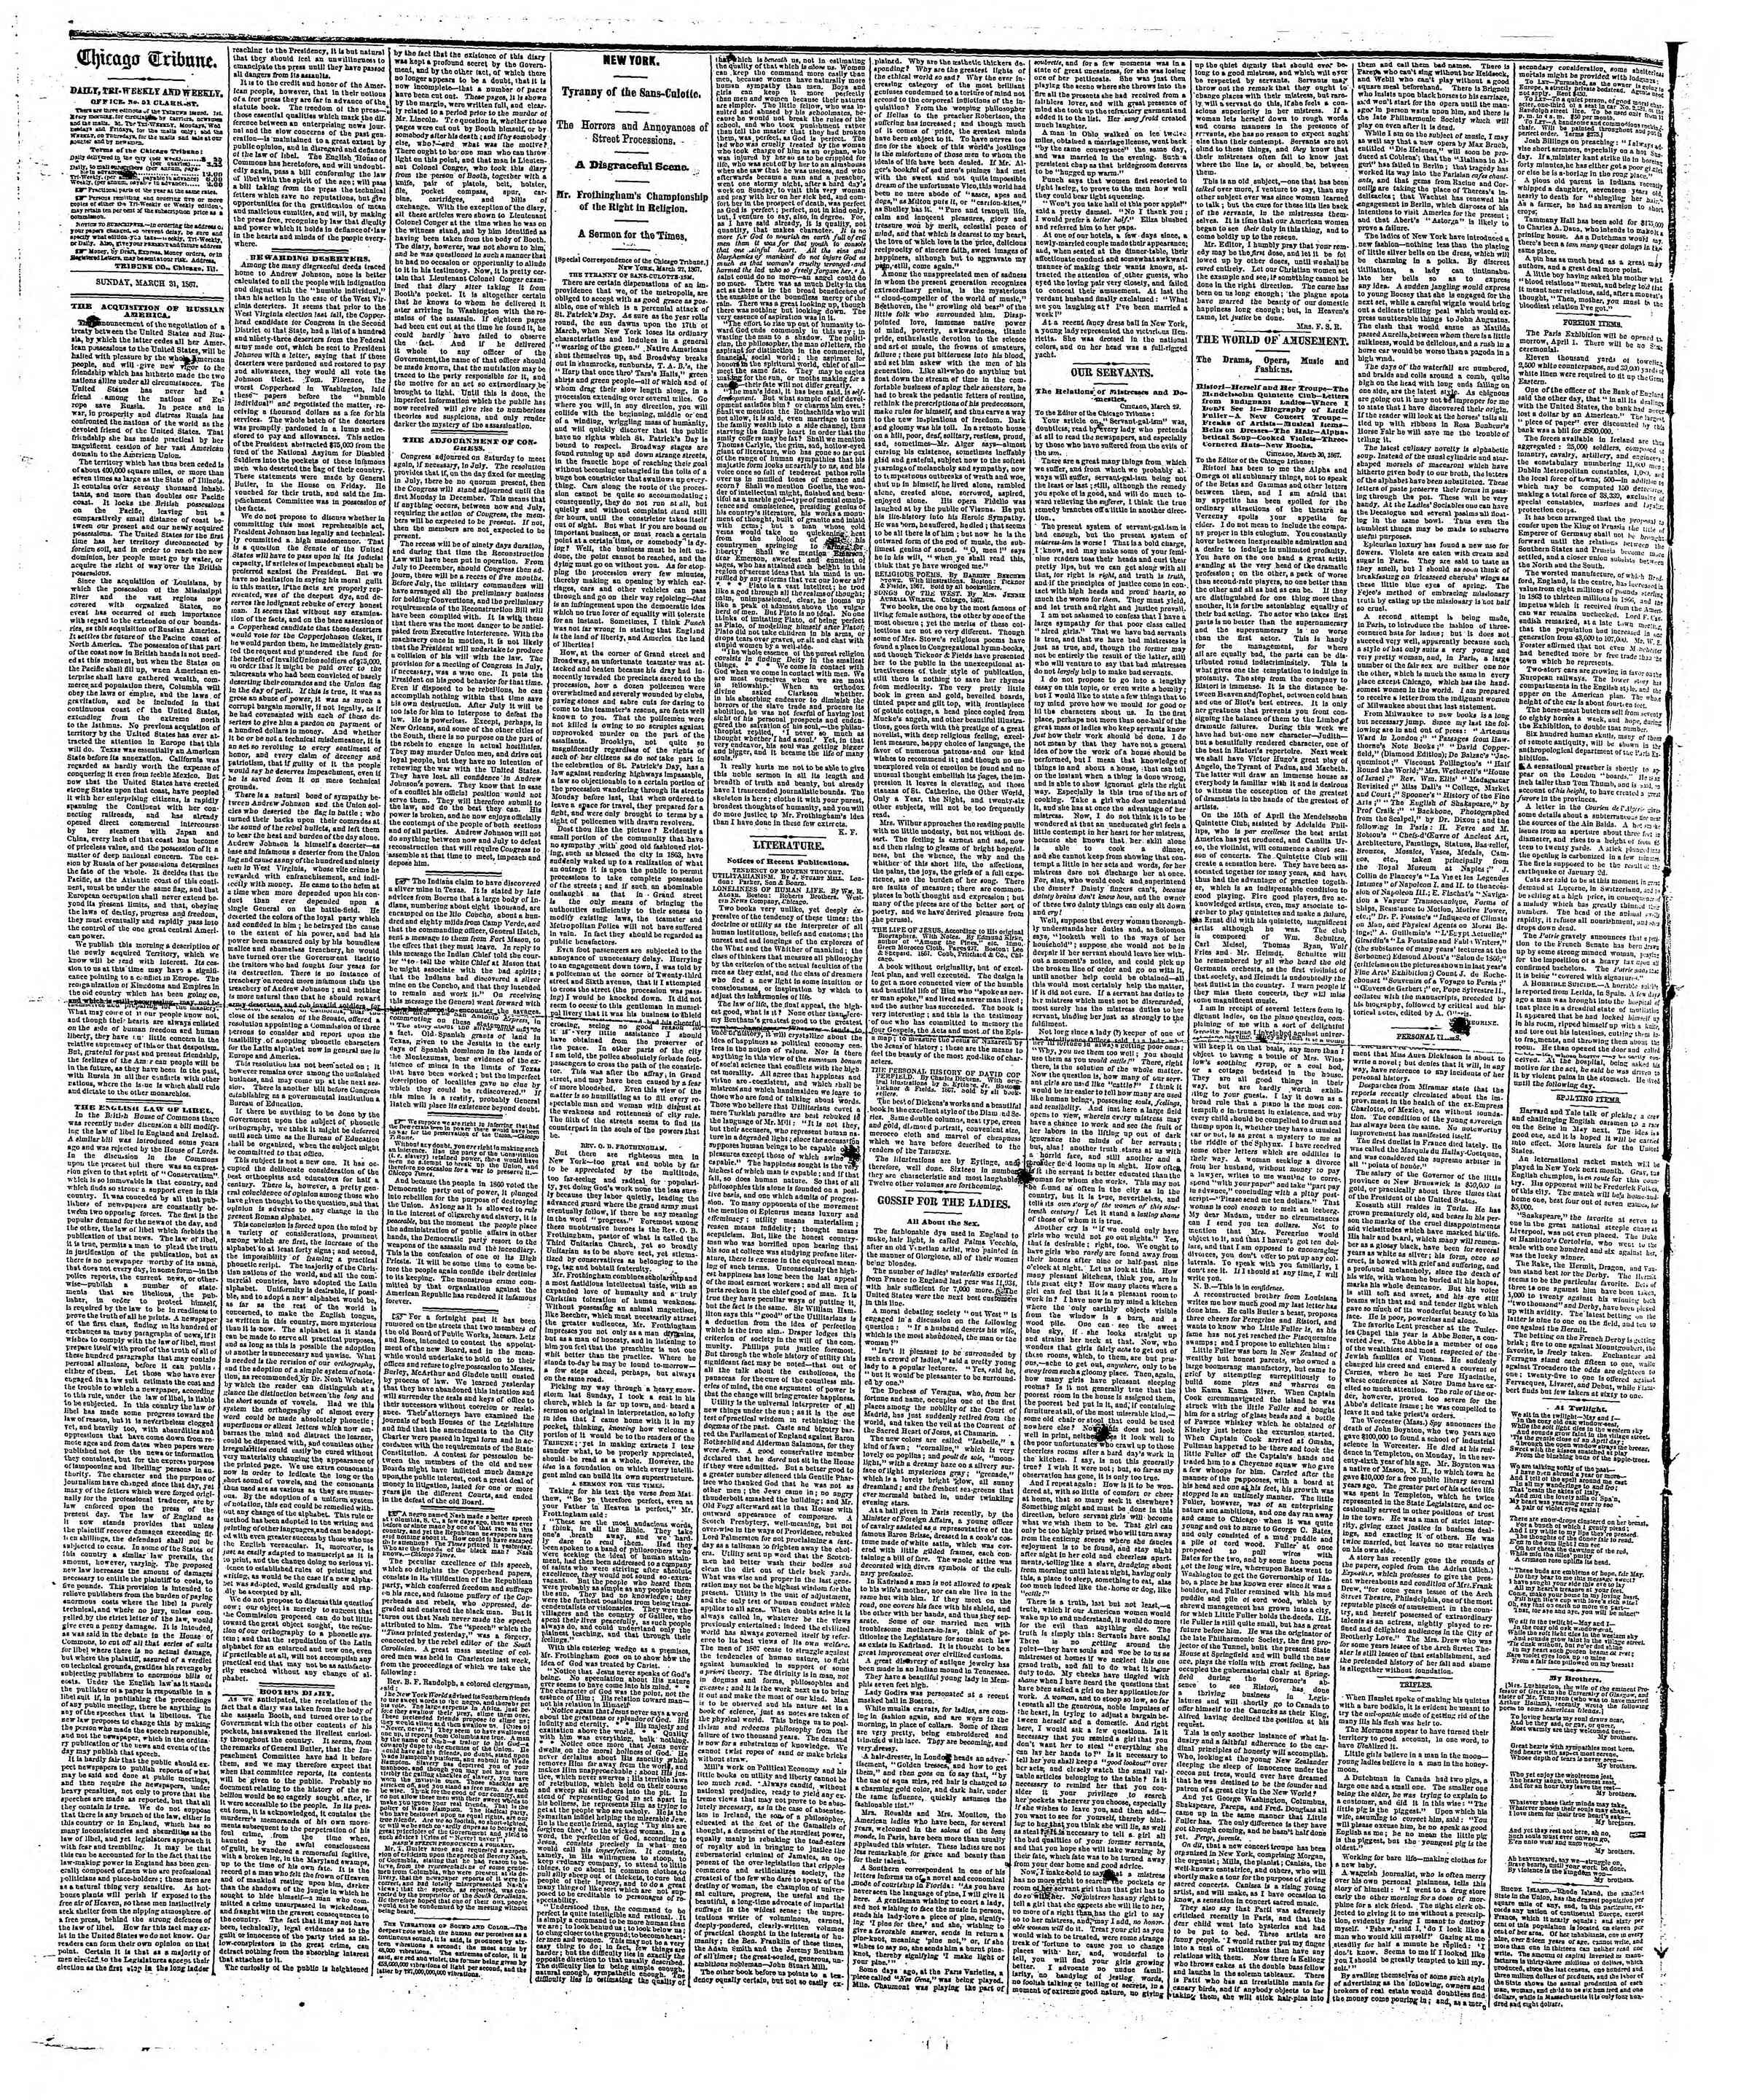 Newspaper of The Chicago Tribune dated March 31, 1867 Page 2